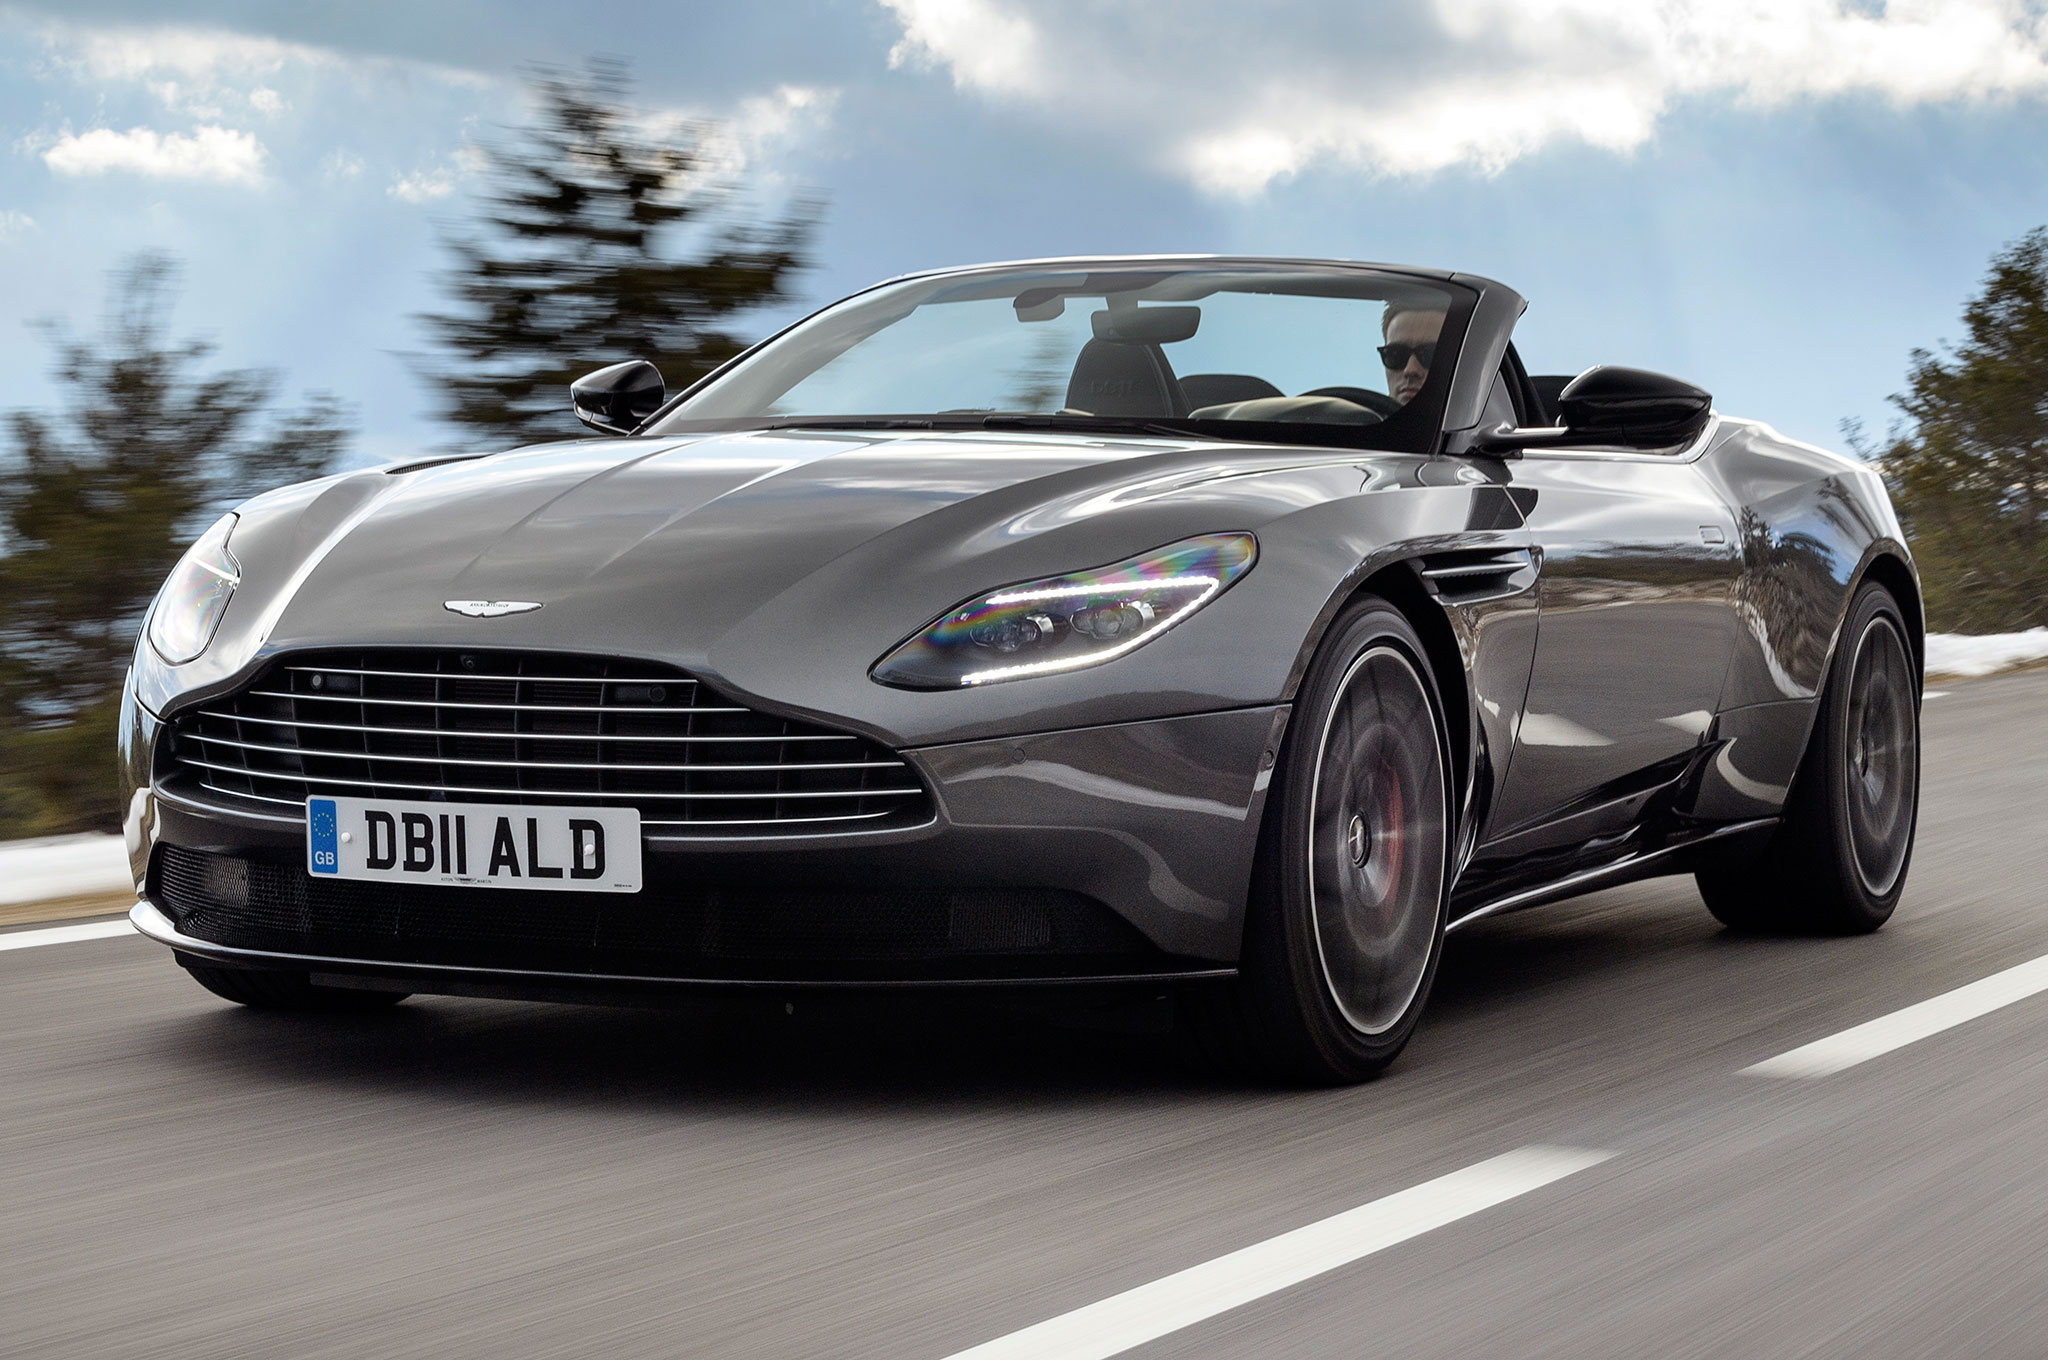 2019 Aston Martin Db11 Volante First Drive Review Automobile Magazine